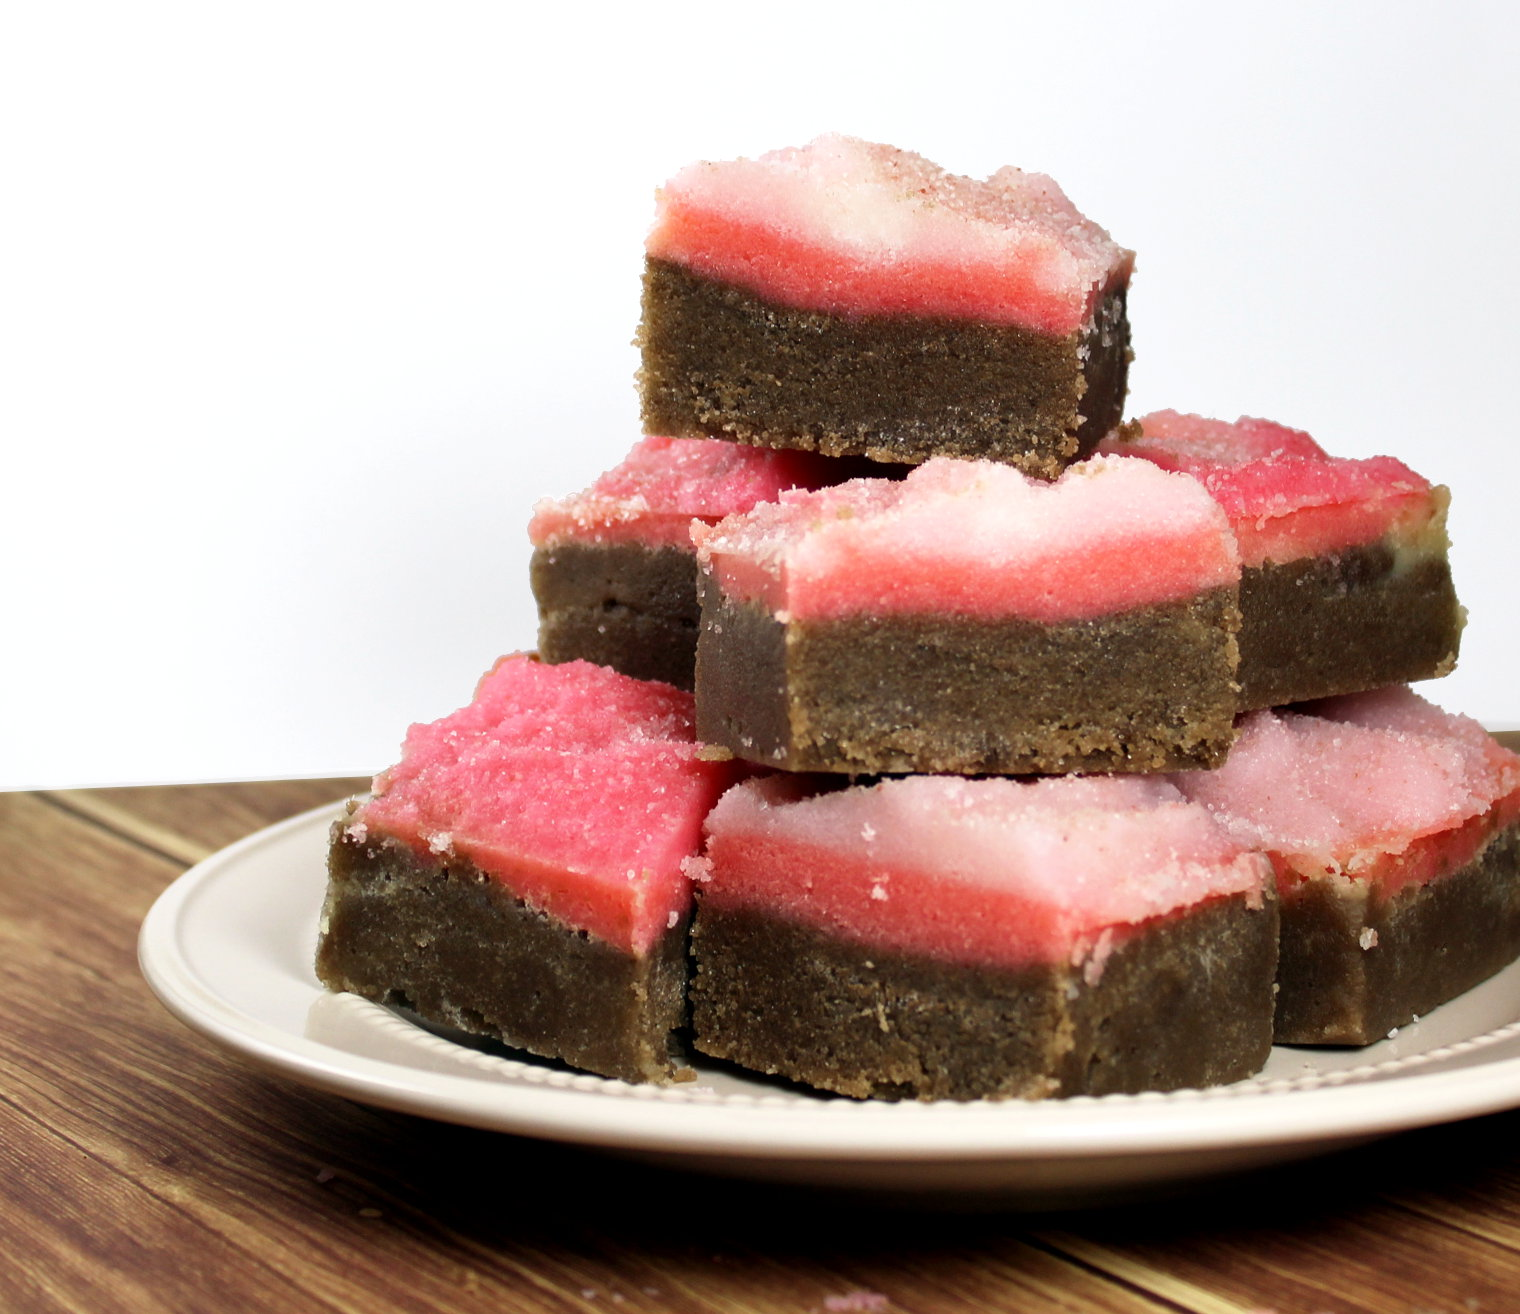 This strawberry and chocolate fudge solid sugar scrub bars recipe makes fantastic treats for your skin! Indulge in sugar and chocolate with none of the calories. These make great homemade gifts plus they're perfect for dry winter skin.